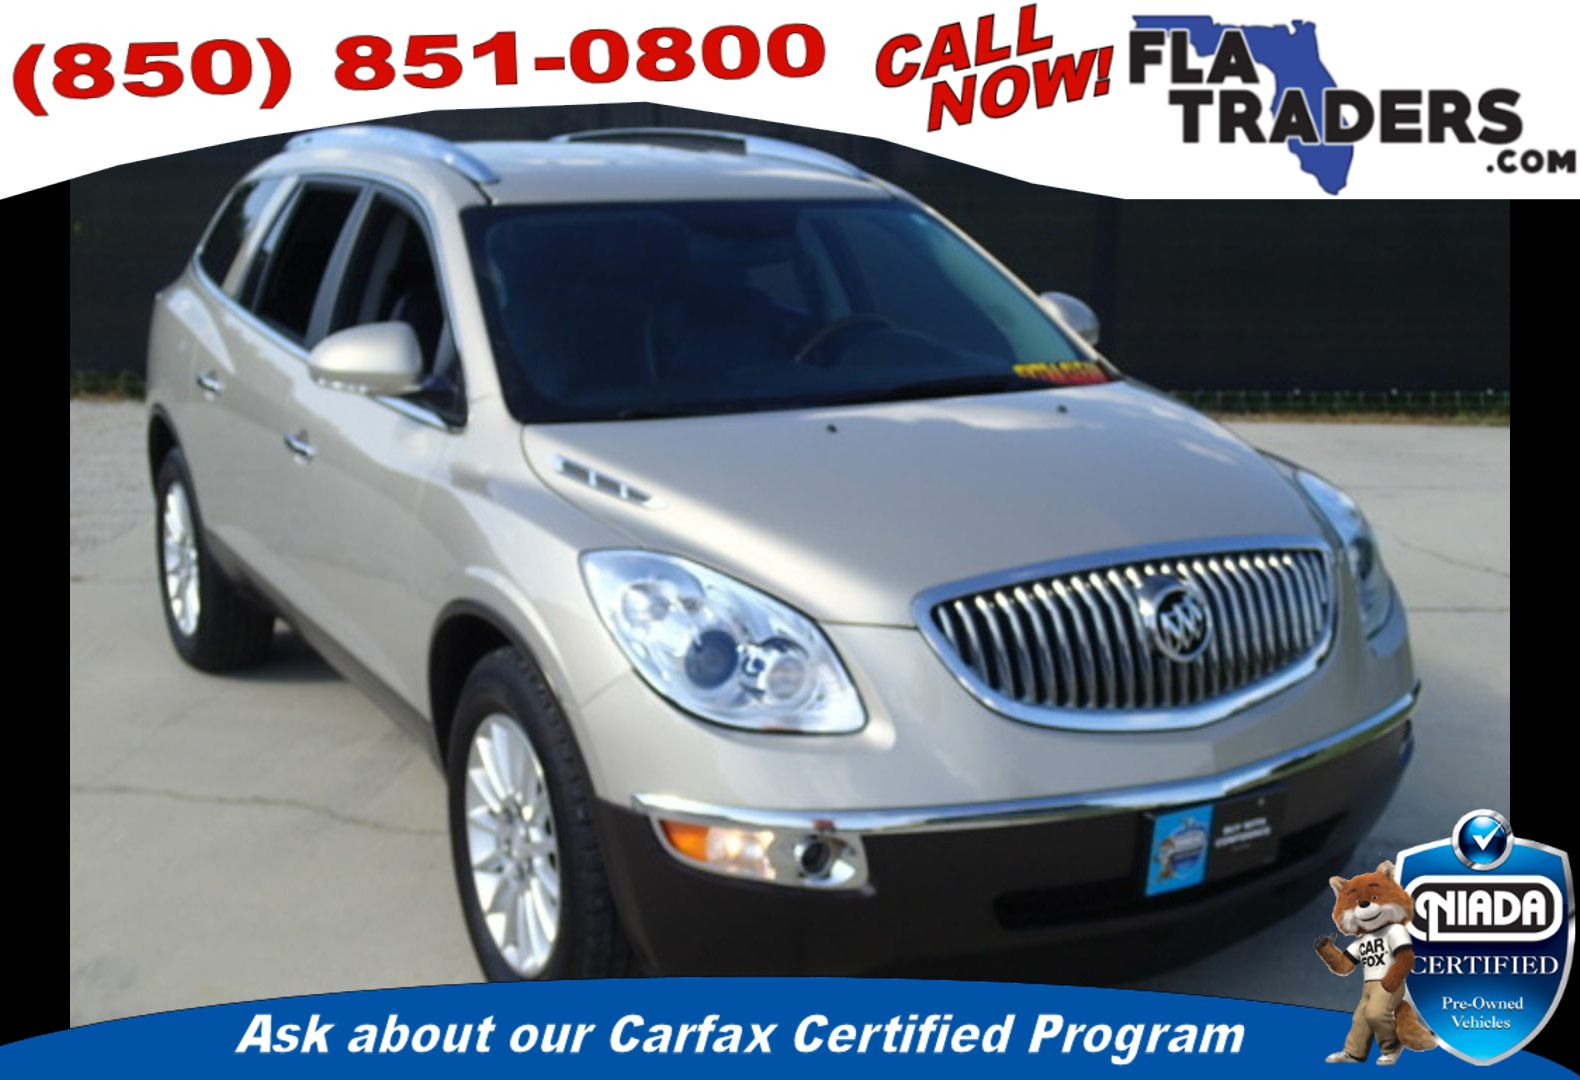 2012 BUICK ENCLAVE - Florida Traders Used Cars in Panama City FL ...